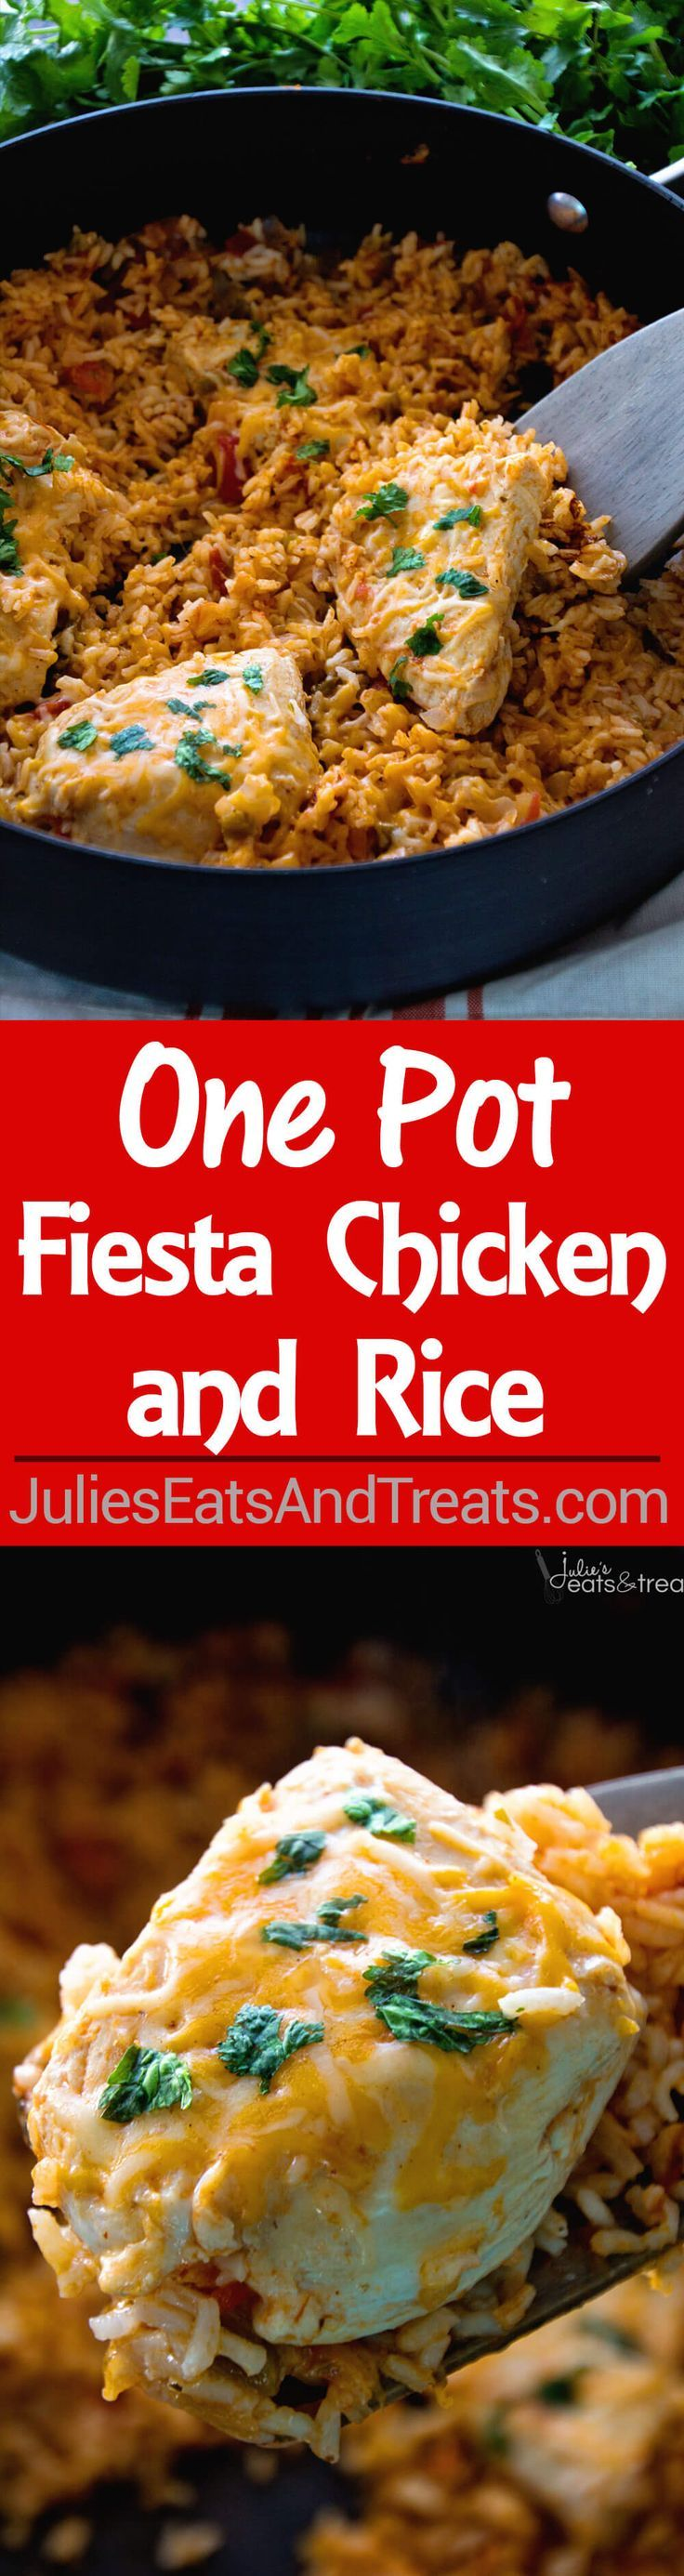 One Pot Fiesta Chicken & Rice Recipe ~ Quick, Easy One Pot Dinner with a Southwestern Flair! Cheesy Chicken In a Bed of Southwestern Rice Makes the Perfect Quick Meal! ~ http://www.julieseatsandtreats.com